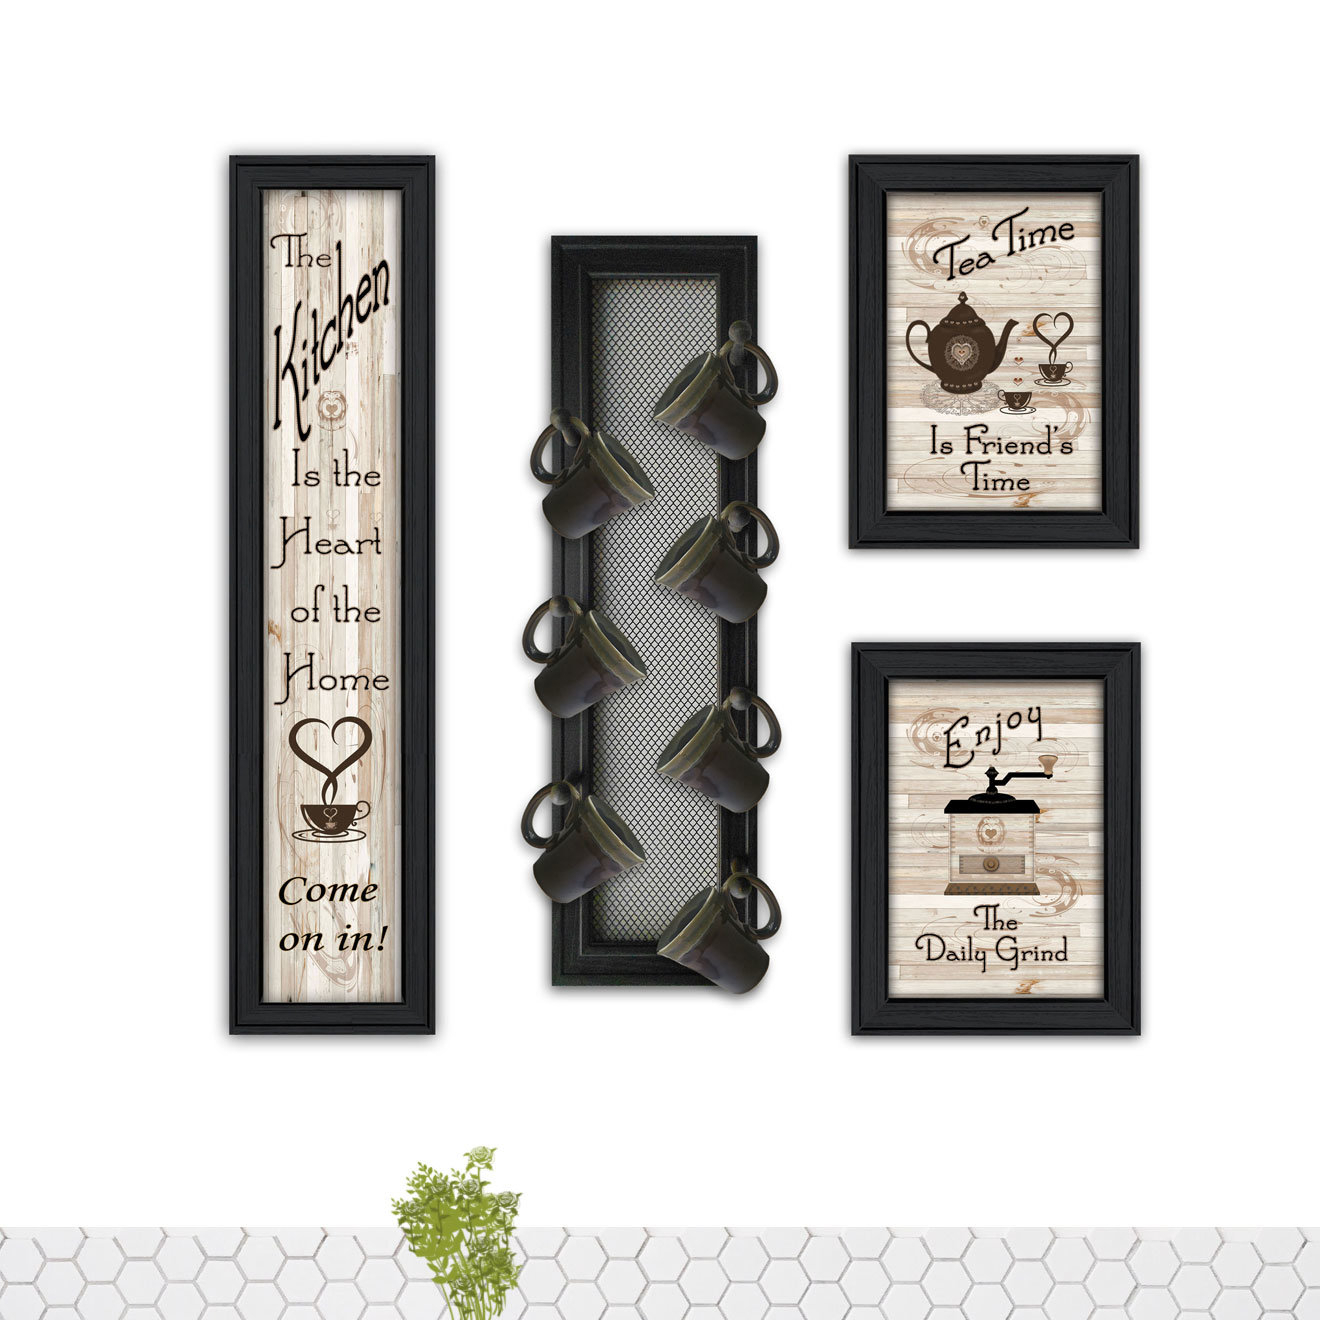 4 Piece Kitchen Collection V Wall Décor Set Regarding 4 Piece Wall Decor Sets (View 4 of 30)